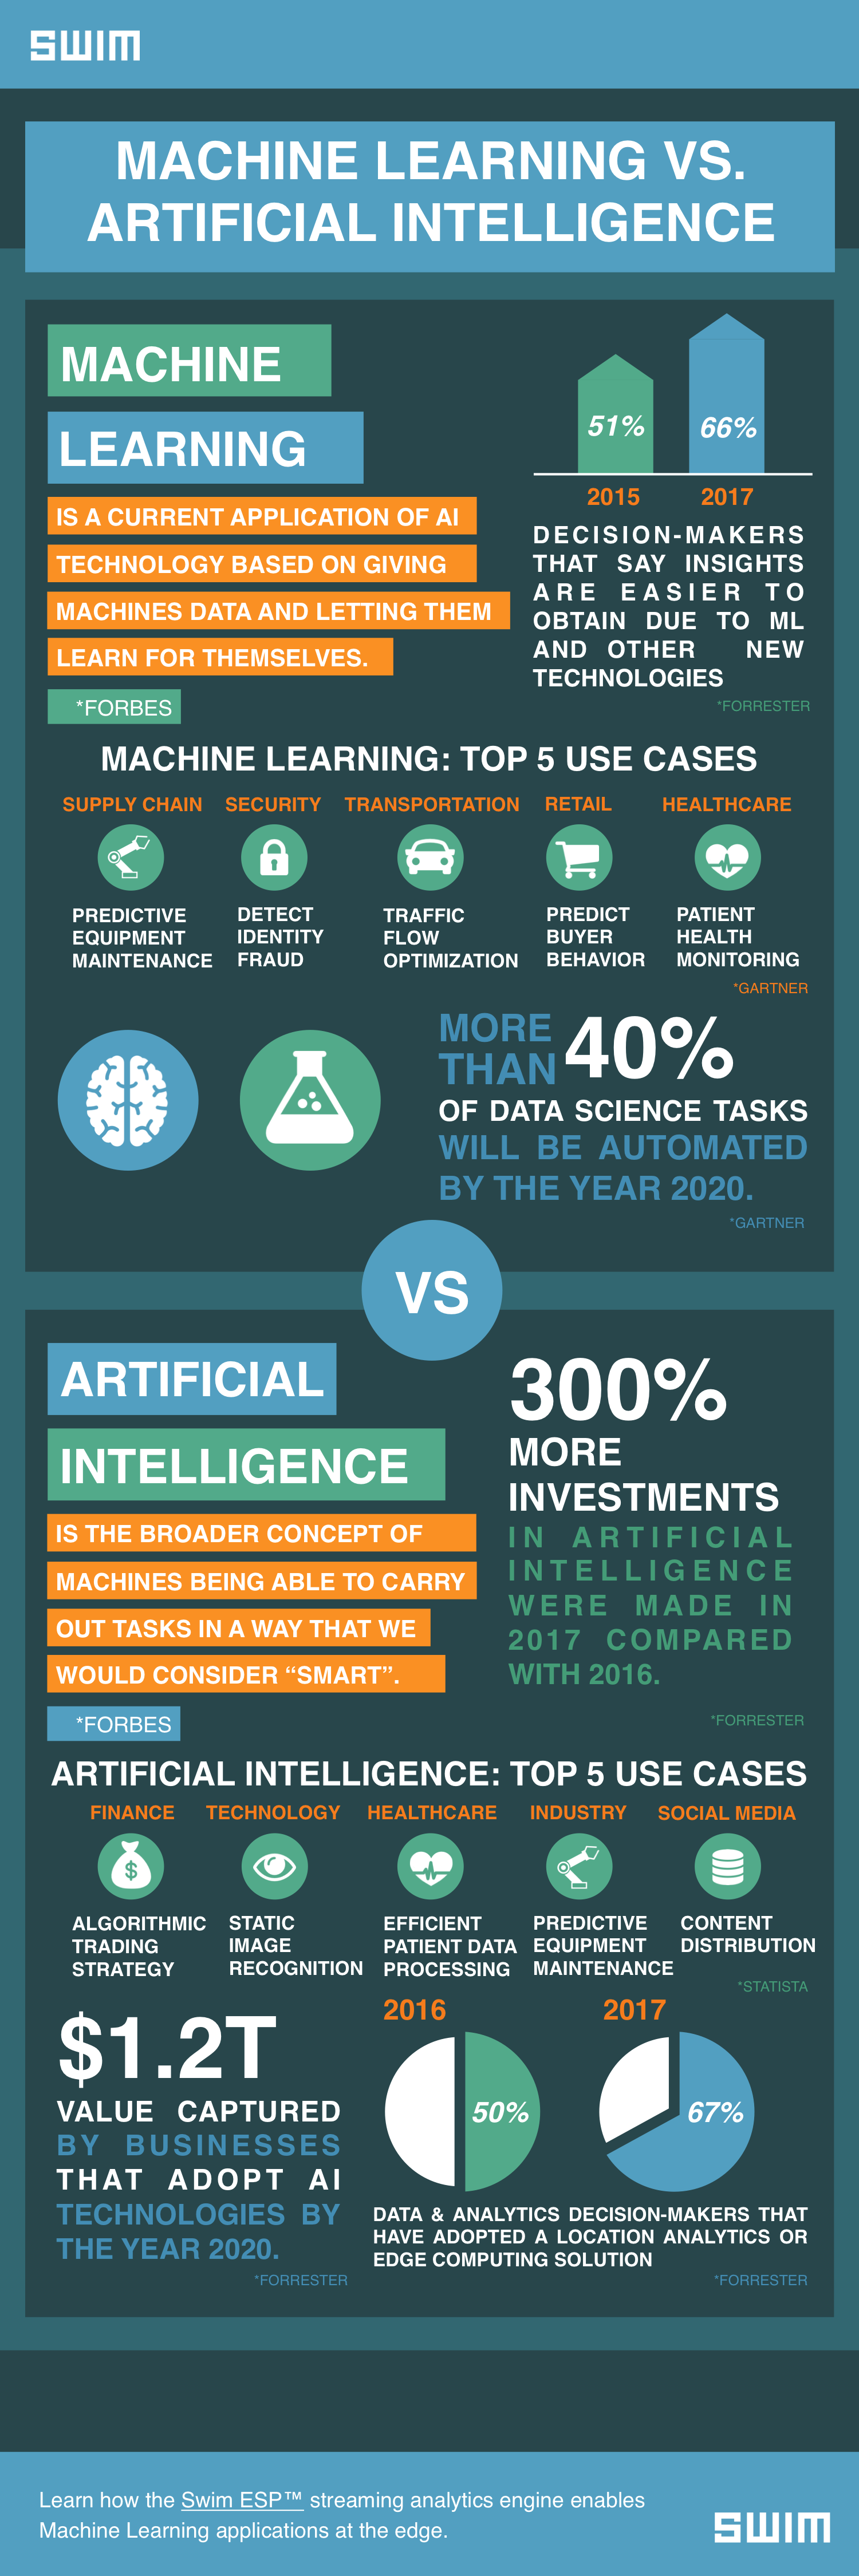 Swim_Machine Learning_Infographic